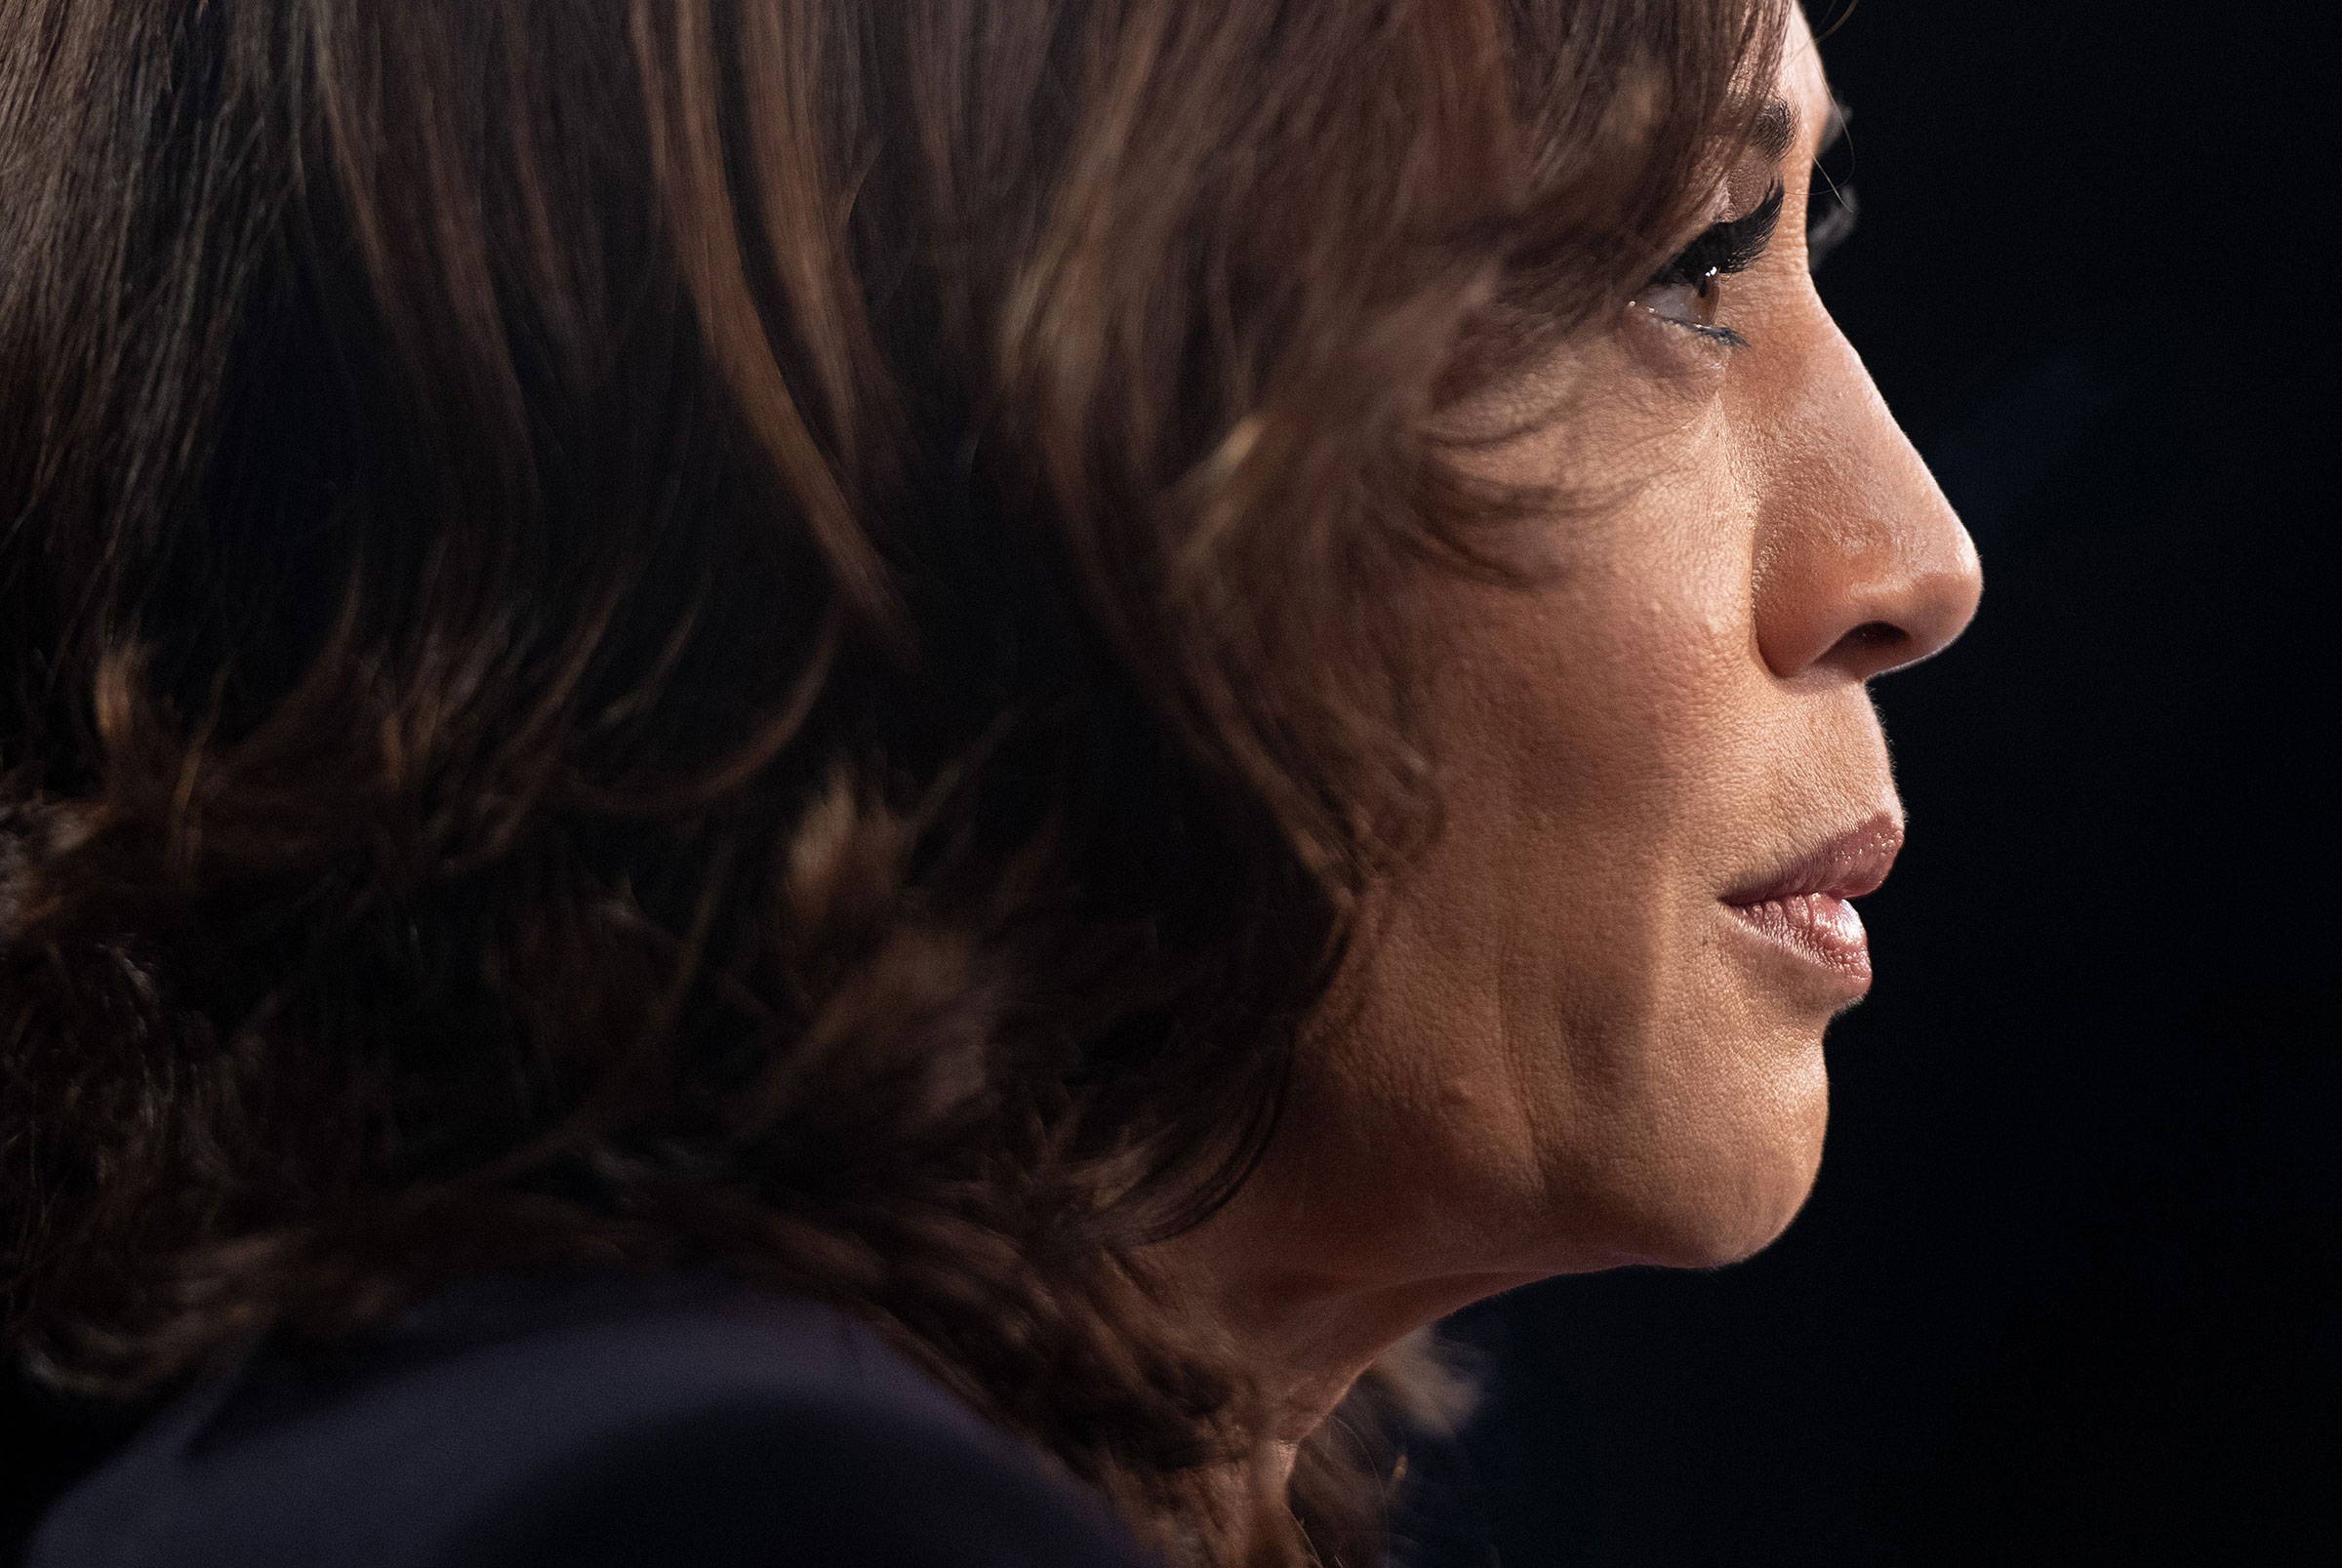 Sen. Kamala Harris in the Spin Room after the second Democratic primary debate of the 2020 presidential campaign.